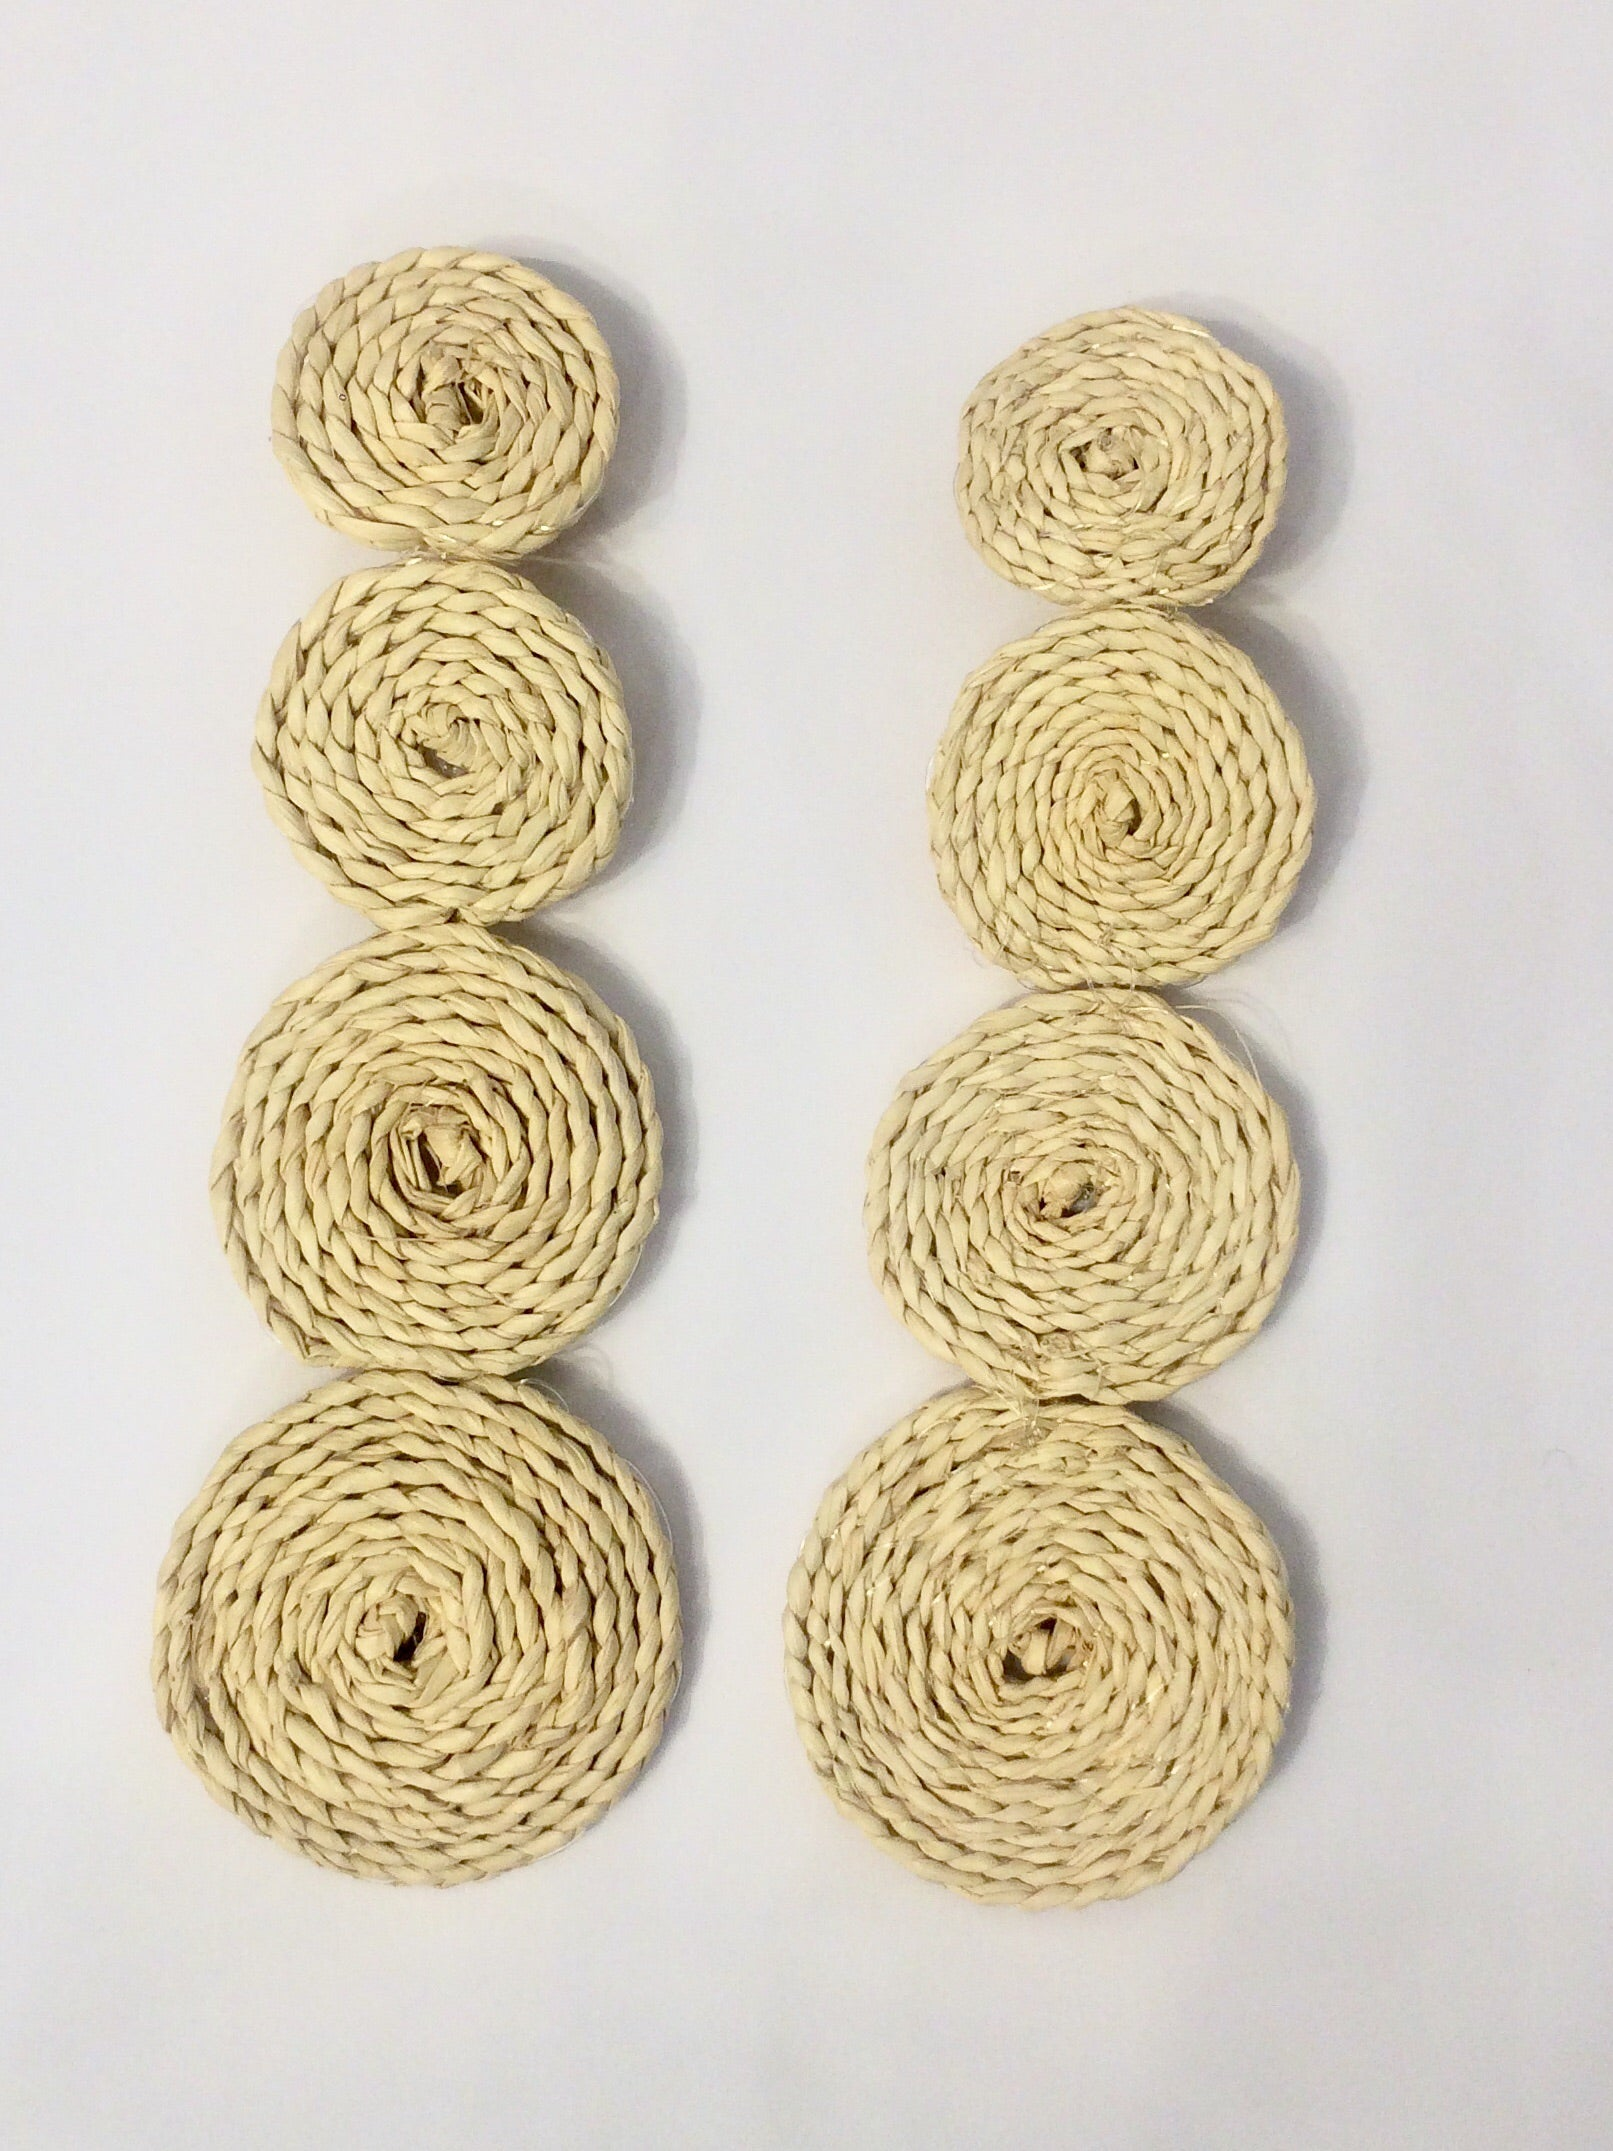 Four circles raffia earrings in Natural